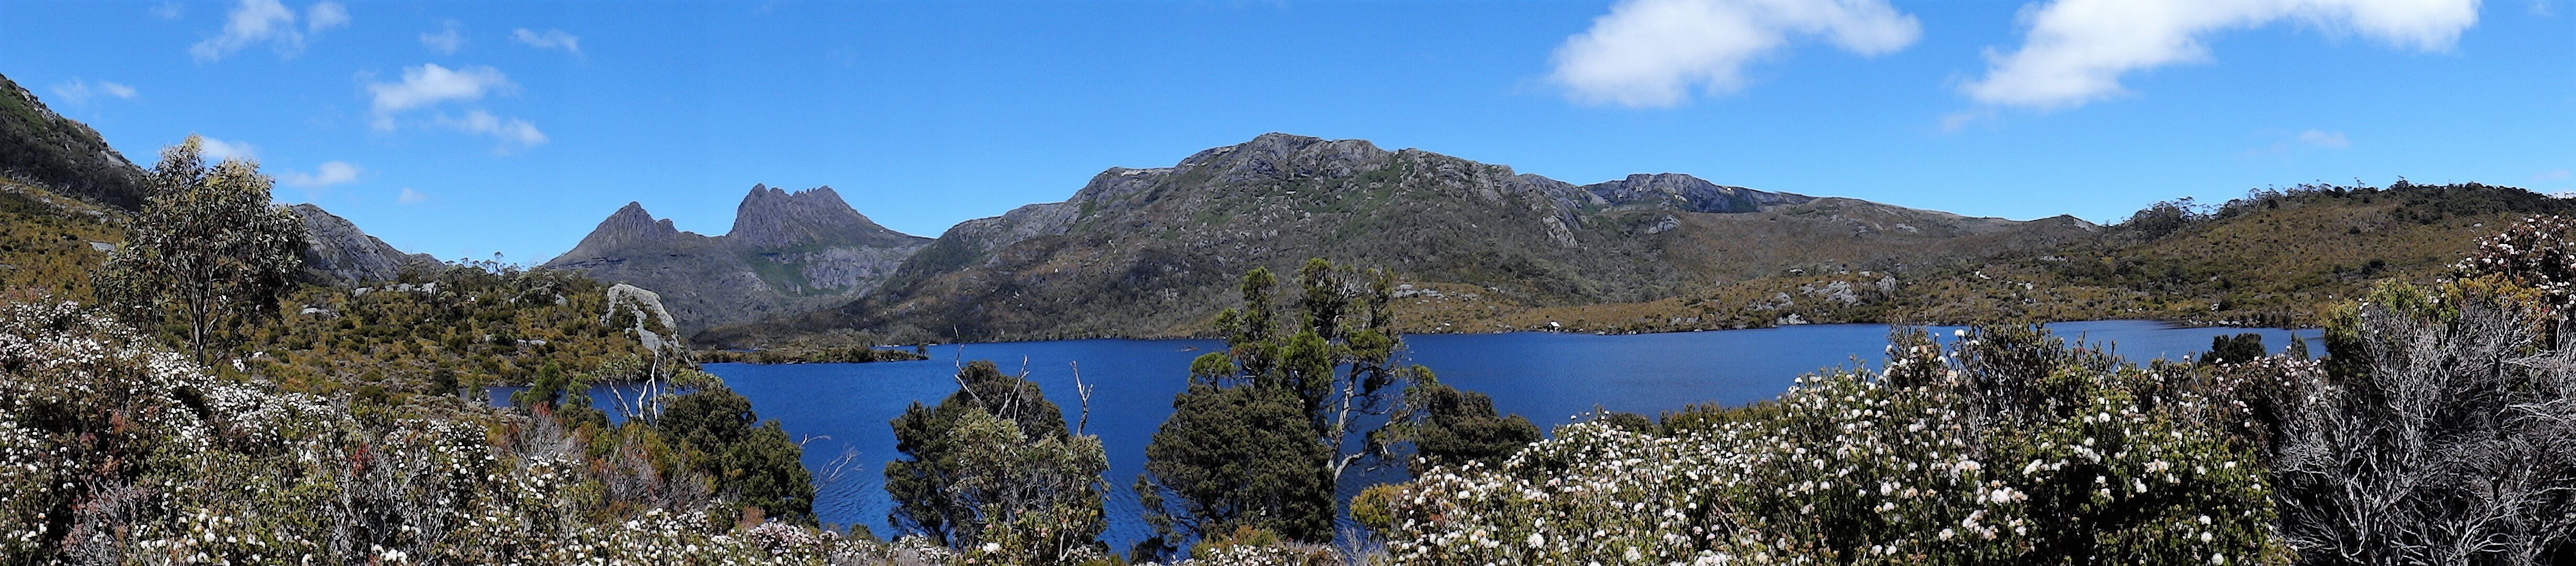 Cradle Mountain Nationalpark Tasmanien